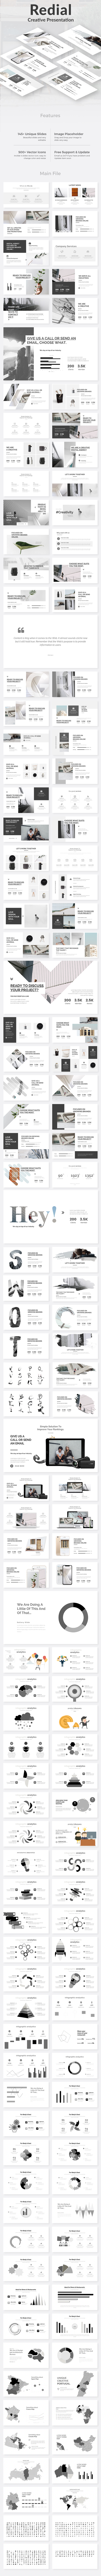 Redial Creative Powerpoint Template - Creative PowerPoint Templates